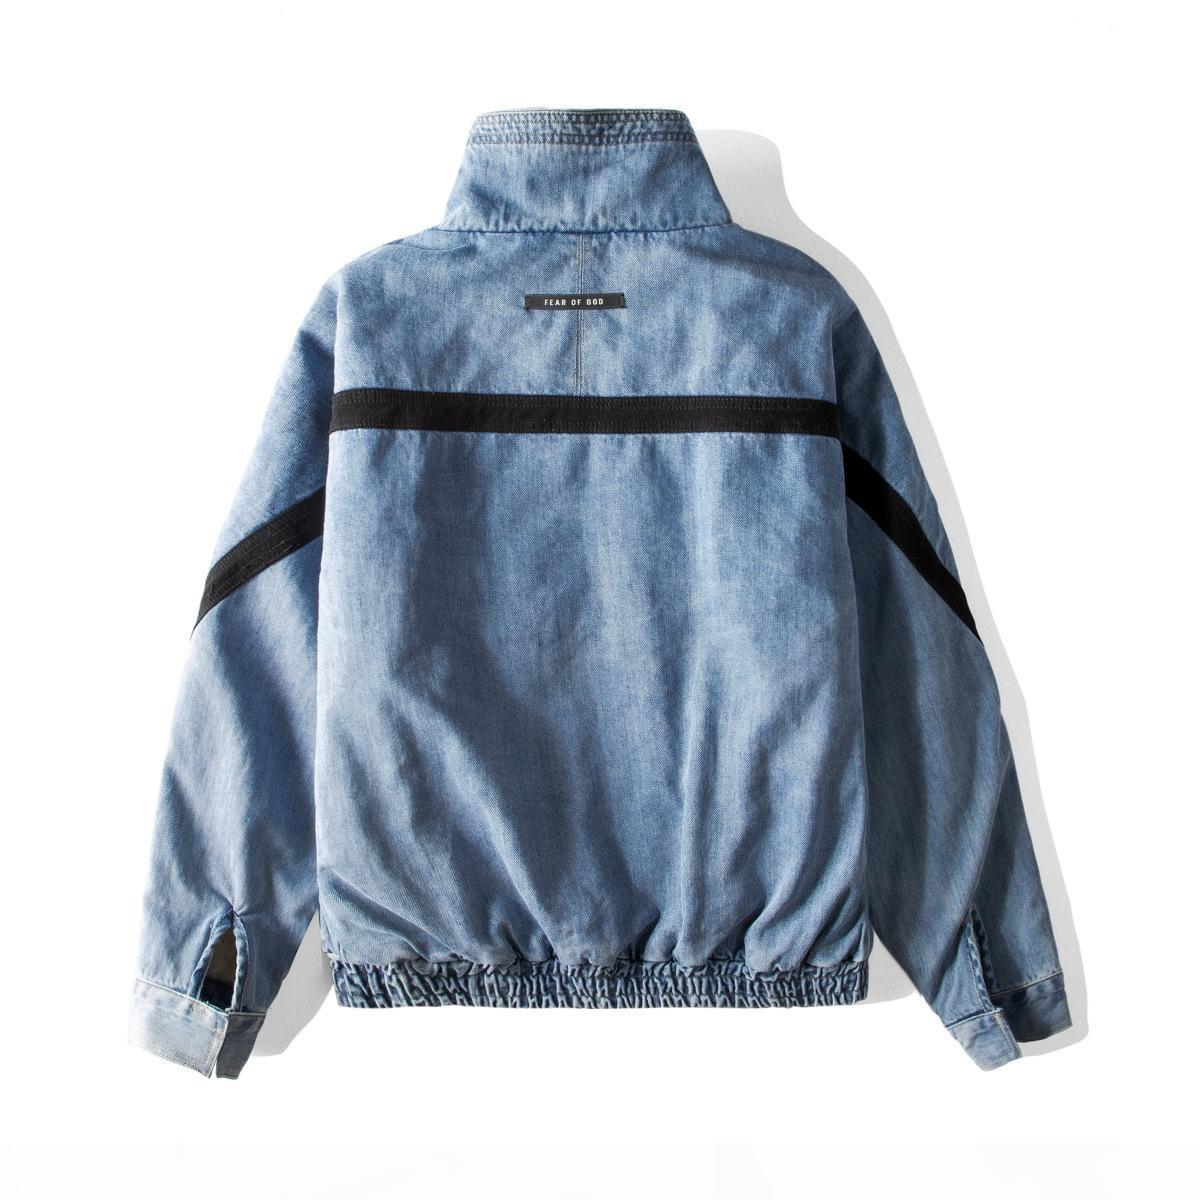 19SS Nebbia 6th Mens Giacche High Street Fashion Coat Waving Tooling Tooling Giacca in denim a vento